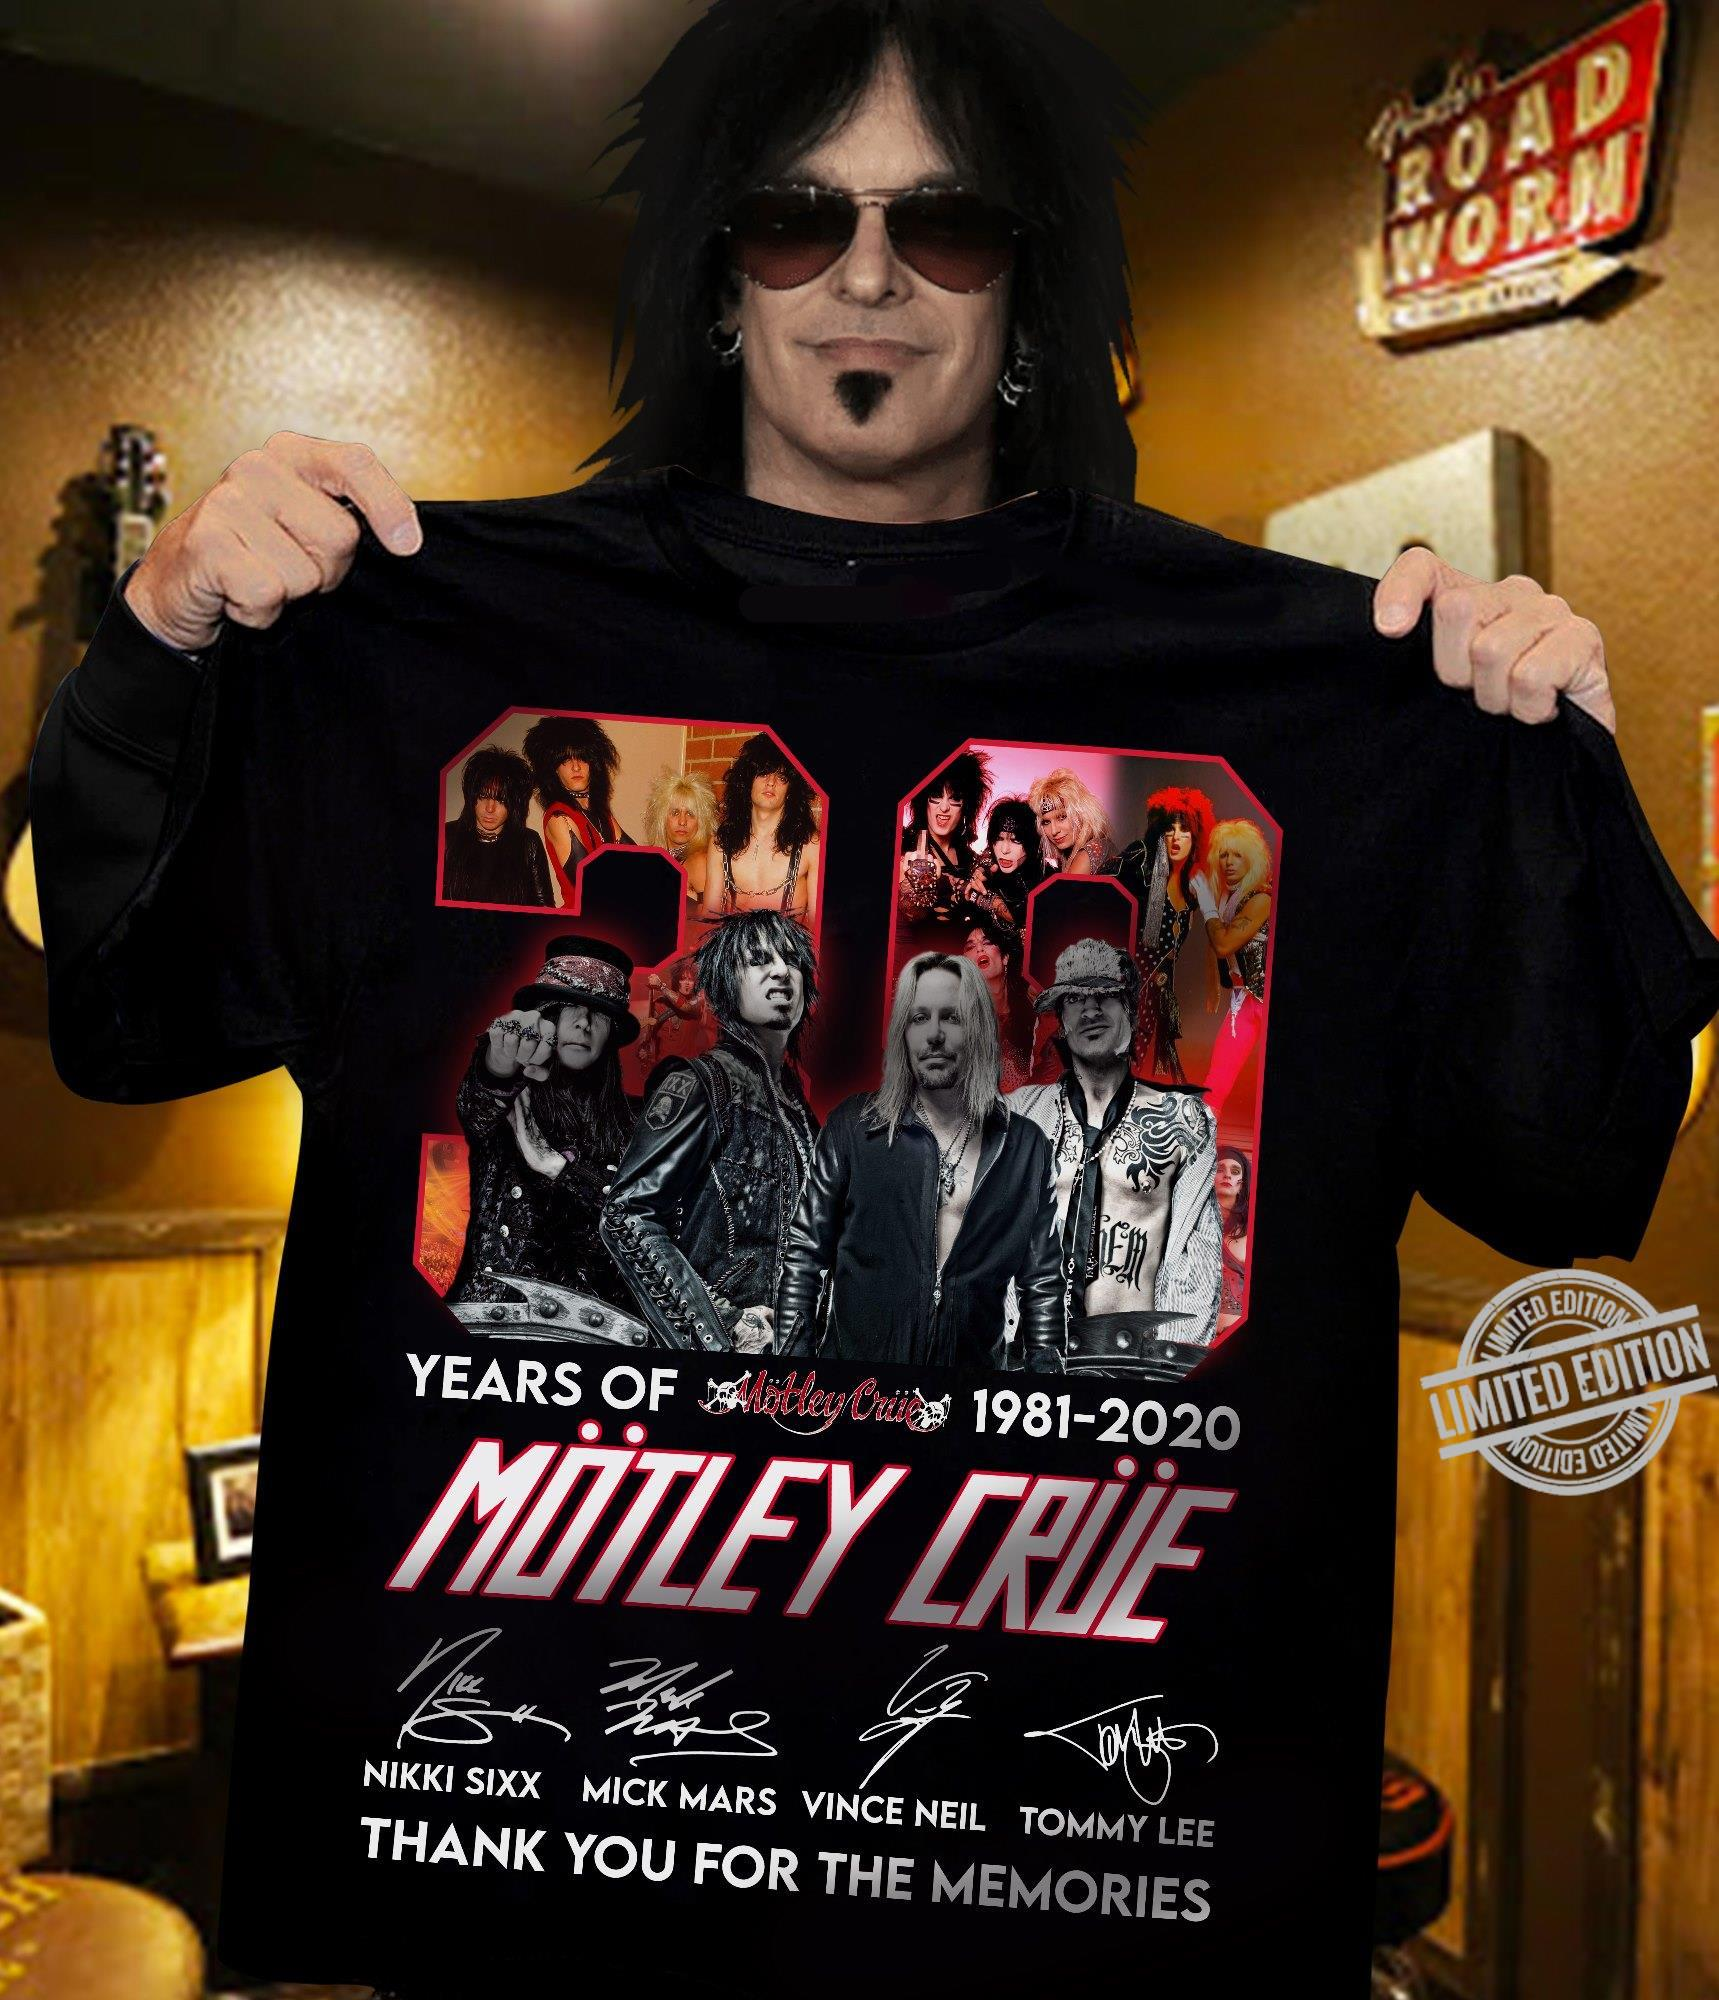 30 Years Of 1981-2020 Motley Crue Thank You For The Memories Shirt